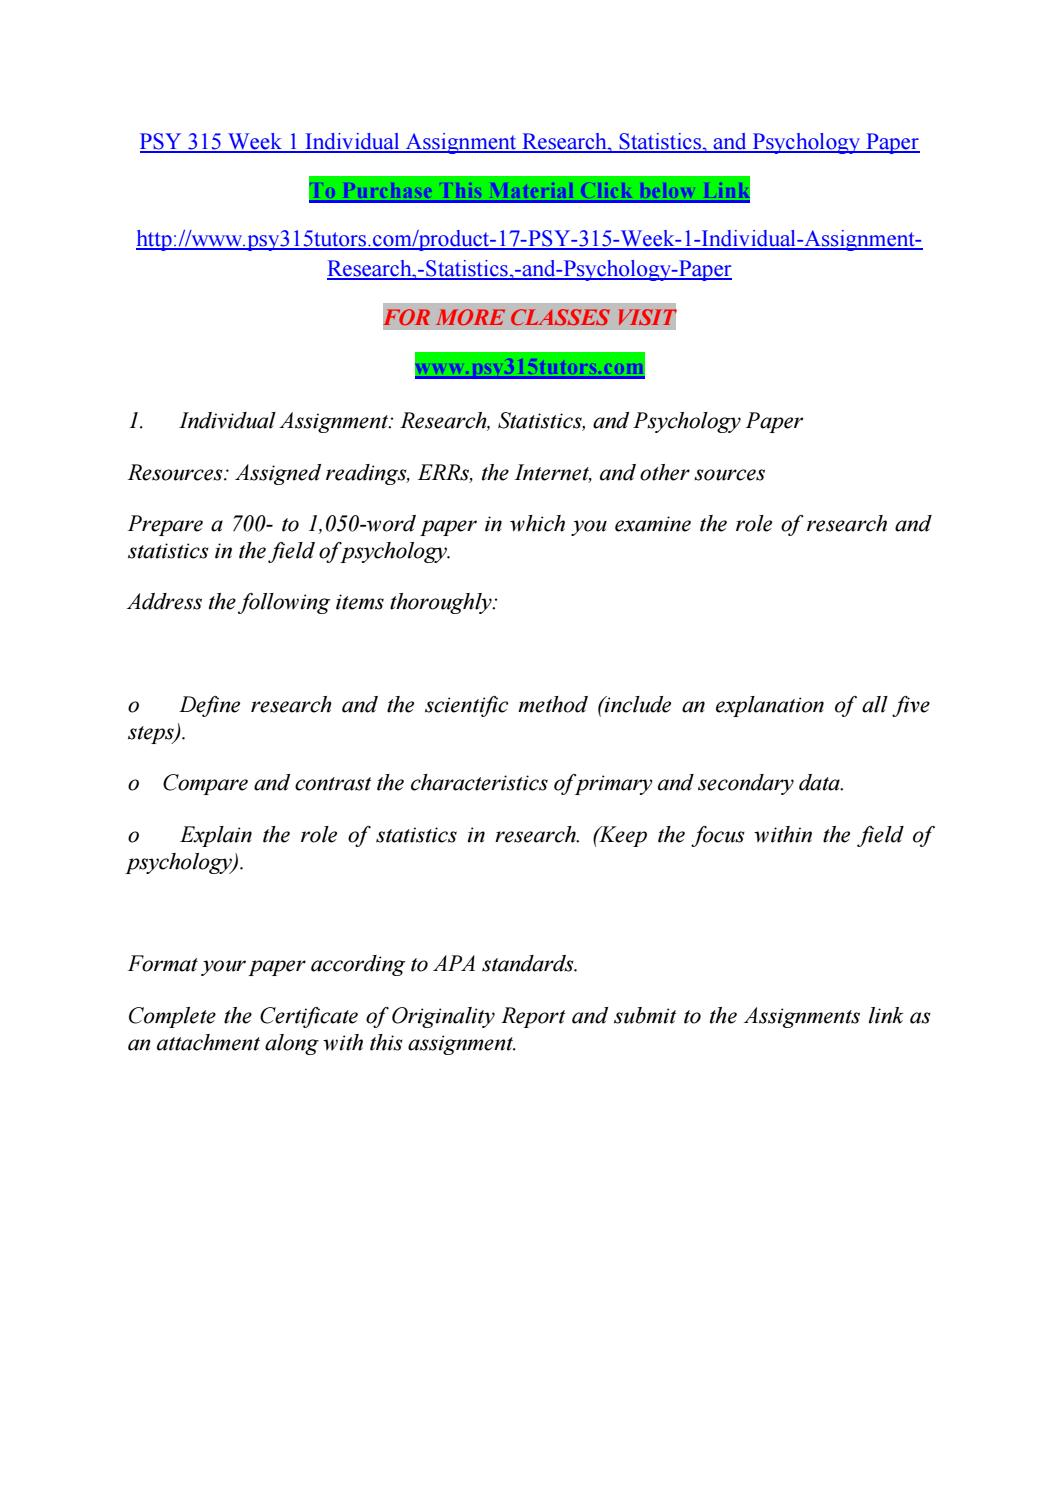 psy 315 research statistics and psychology paper Psy 315 complete class all discussion questions and assignments(statistical reasoning in psychology )click this link to get complete class:http://www.